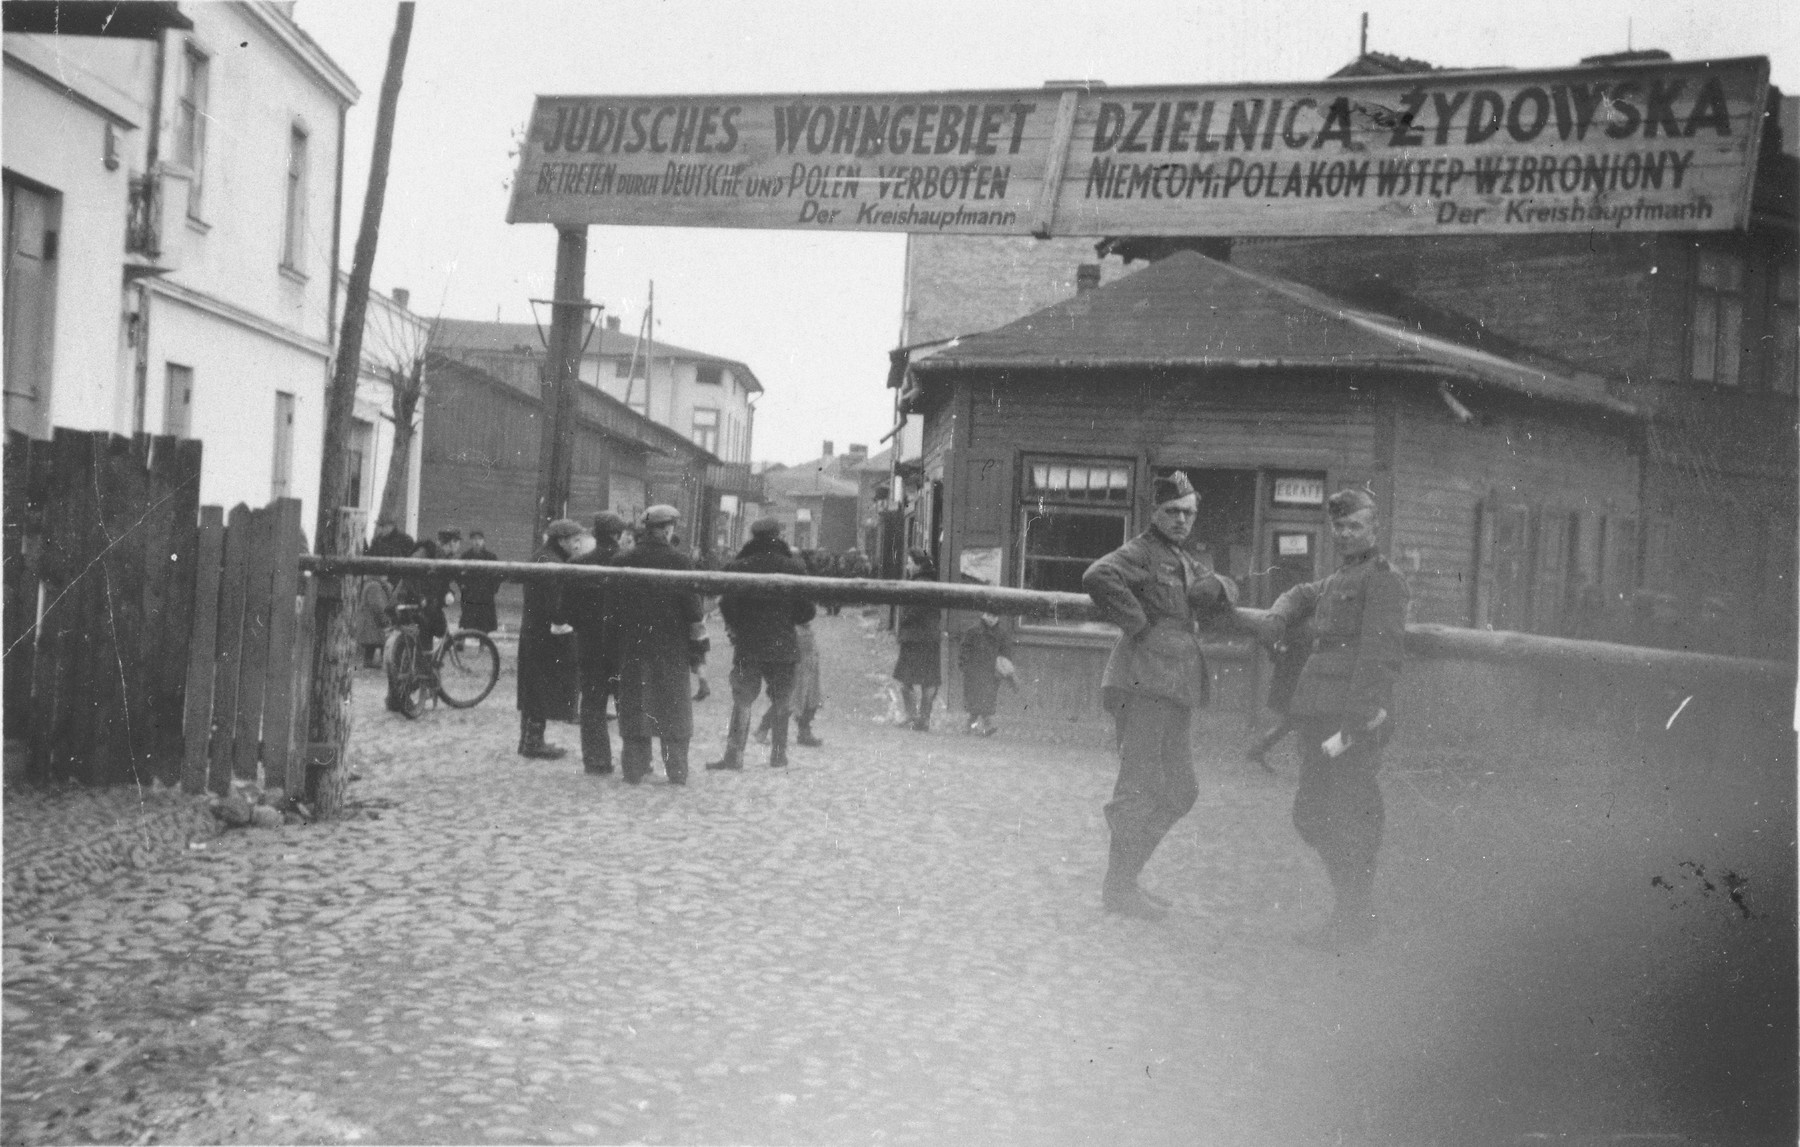 Two German soldiers pose at the entrance to an unidentified ghetto in Poland.    The sign in Polish and German states that entrance to the Jewish quarter is forbidden to Germans and Poles.